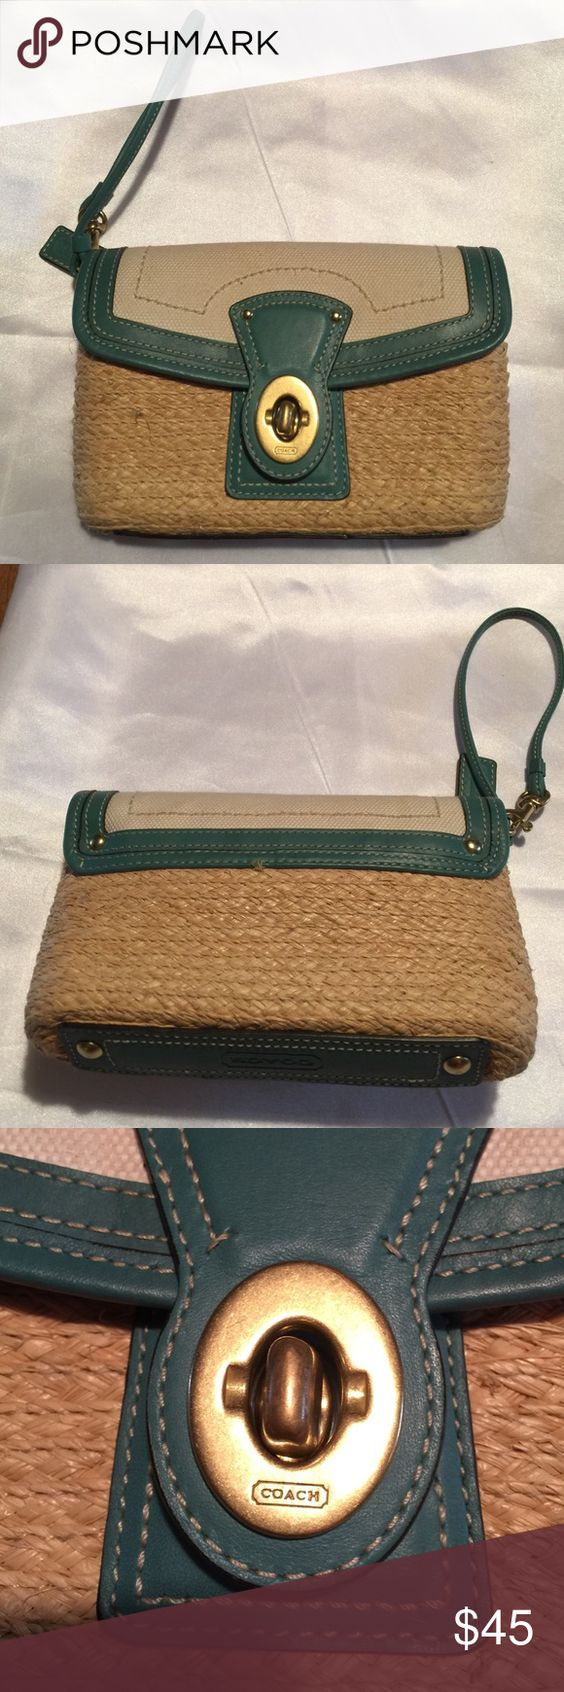 Coach Legacy Banana Straw Turnlock Flap Woven banana straw, with teal leather trim, and coach hang tag. Eight inches long, five inches tall and two inches wide. Used - excellent condition inside and out. Coach Bags Clutches & Wristlets